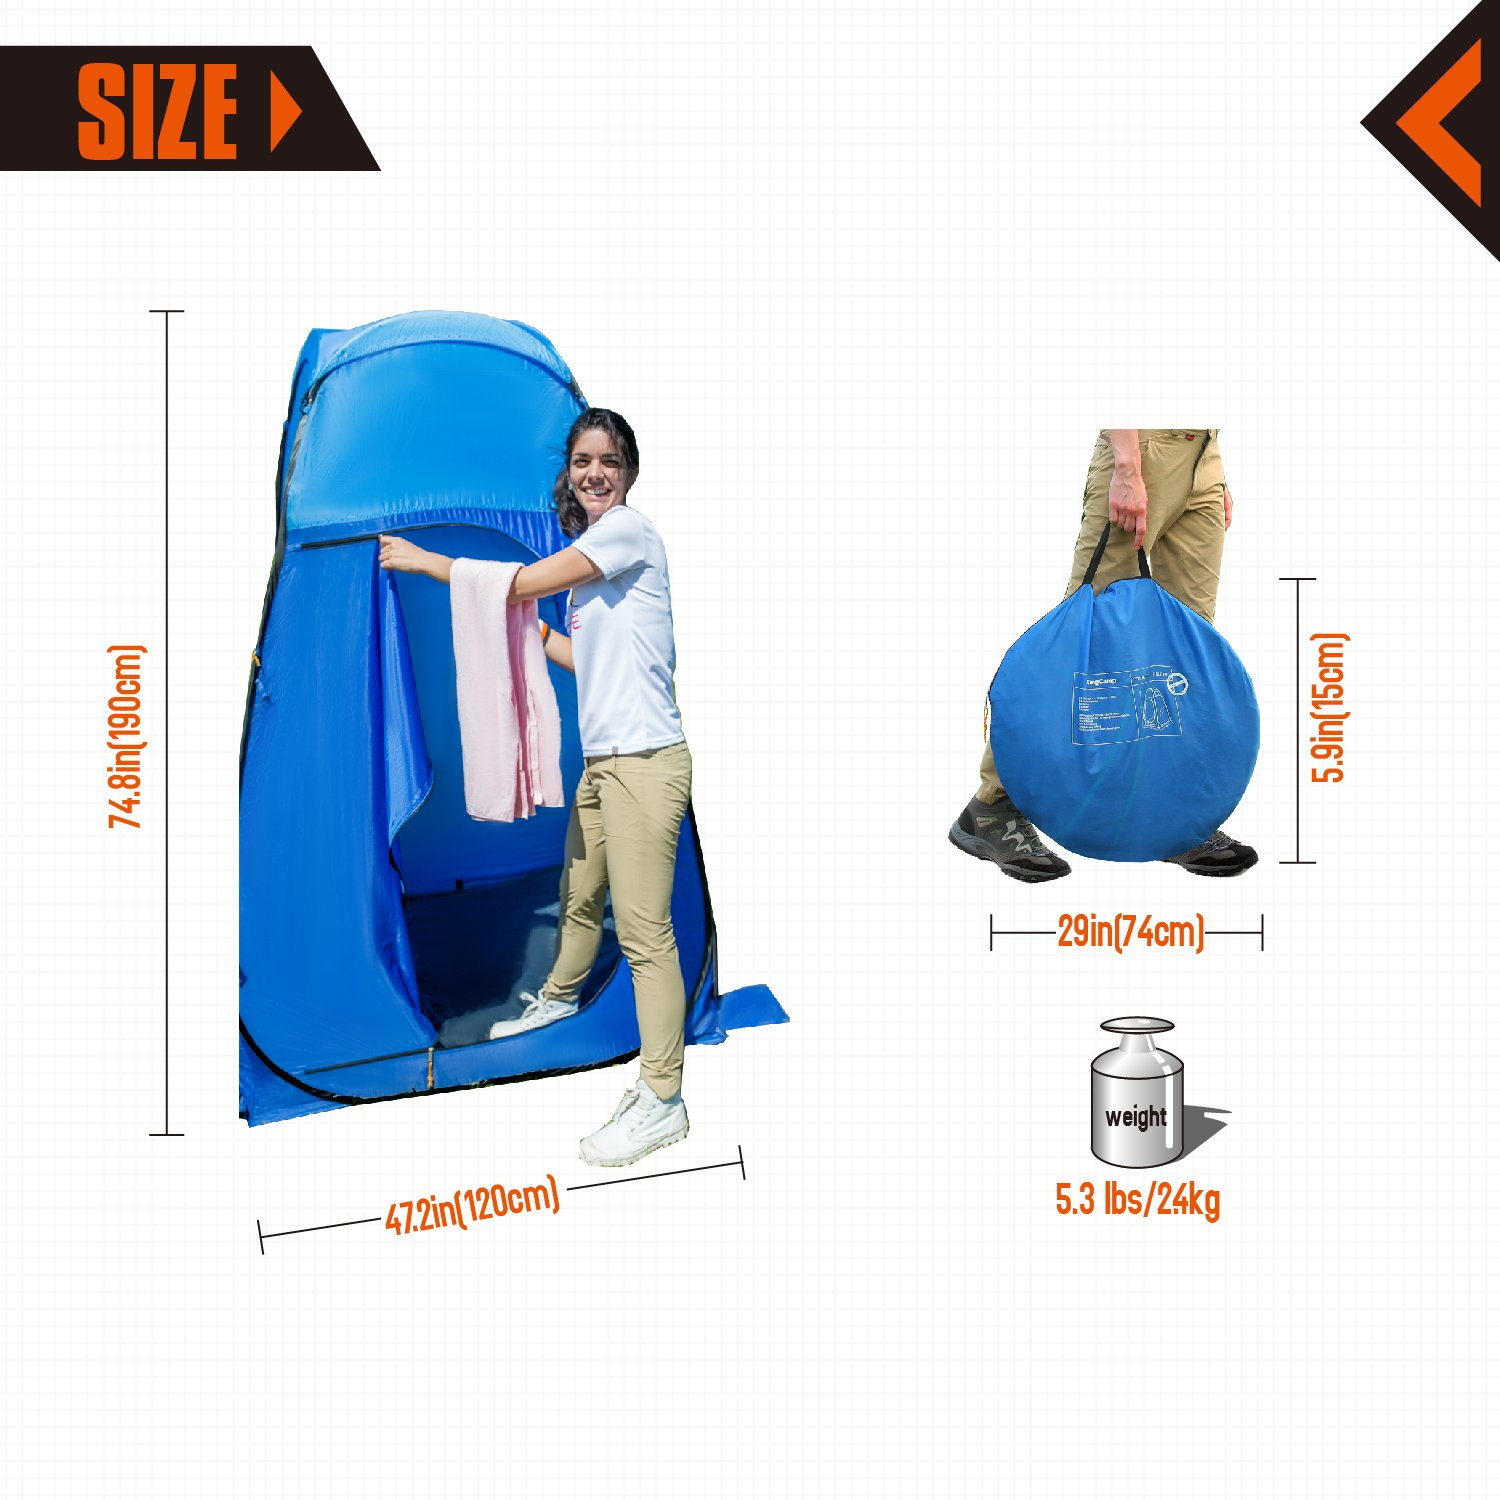 Kingcamp Portable Pop Up Privacy Shelter Privy Tent